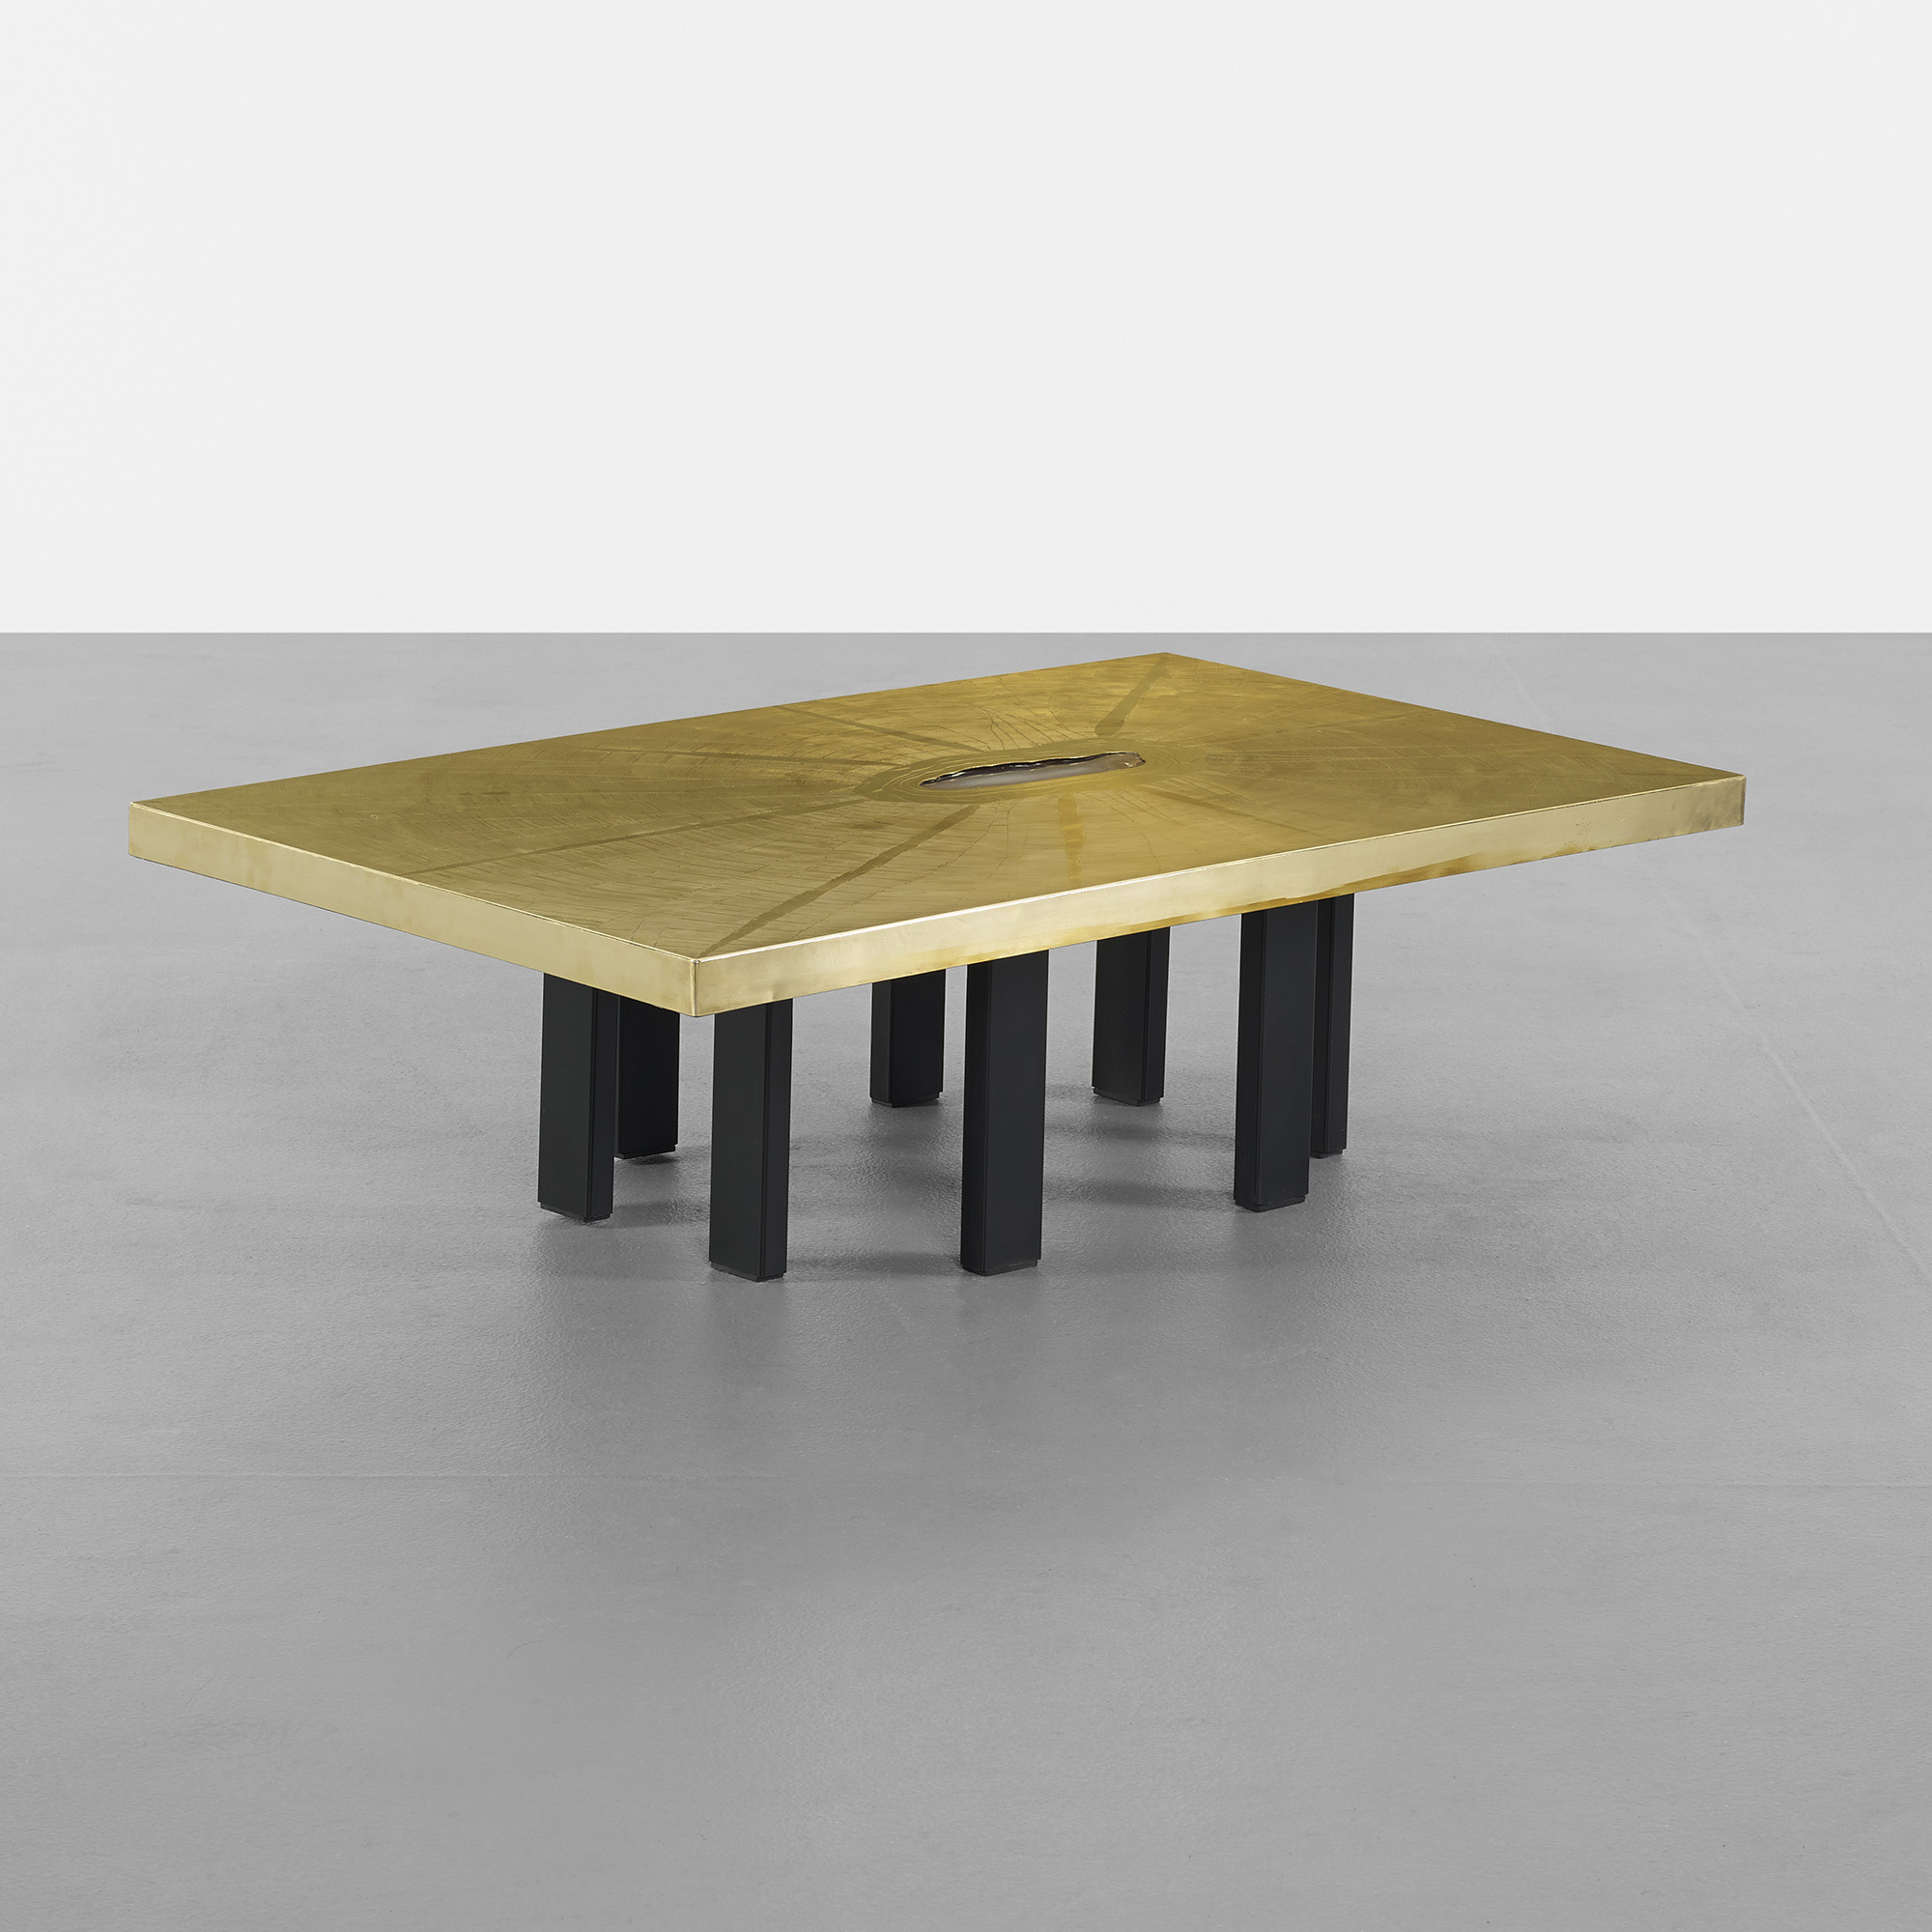 316 GEORGES MATHIAS coffee table Living Contemporary 25 April